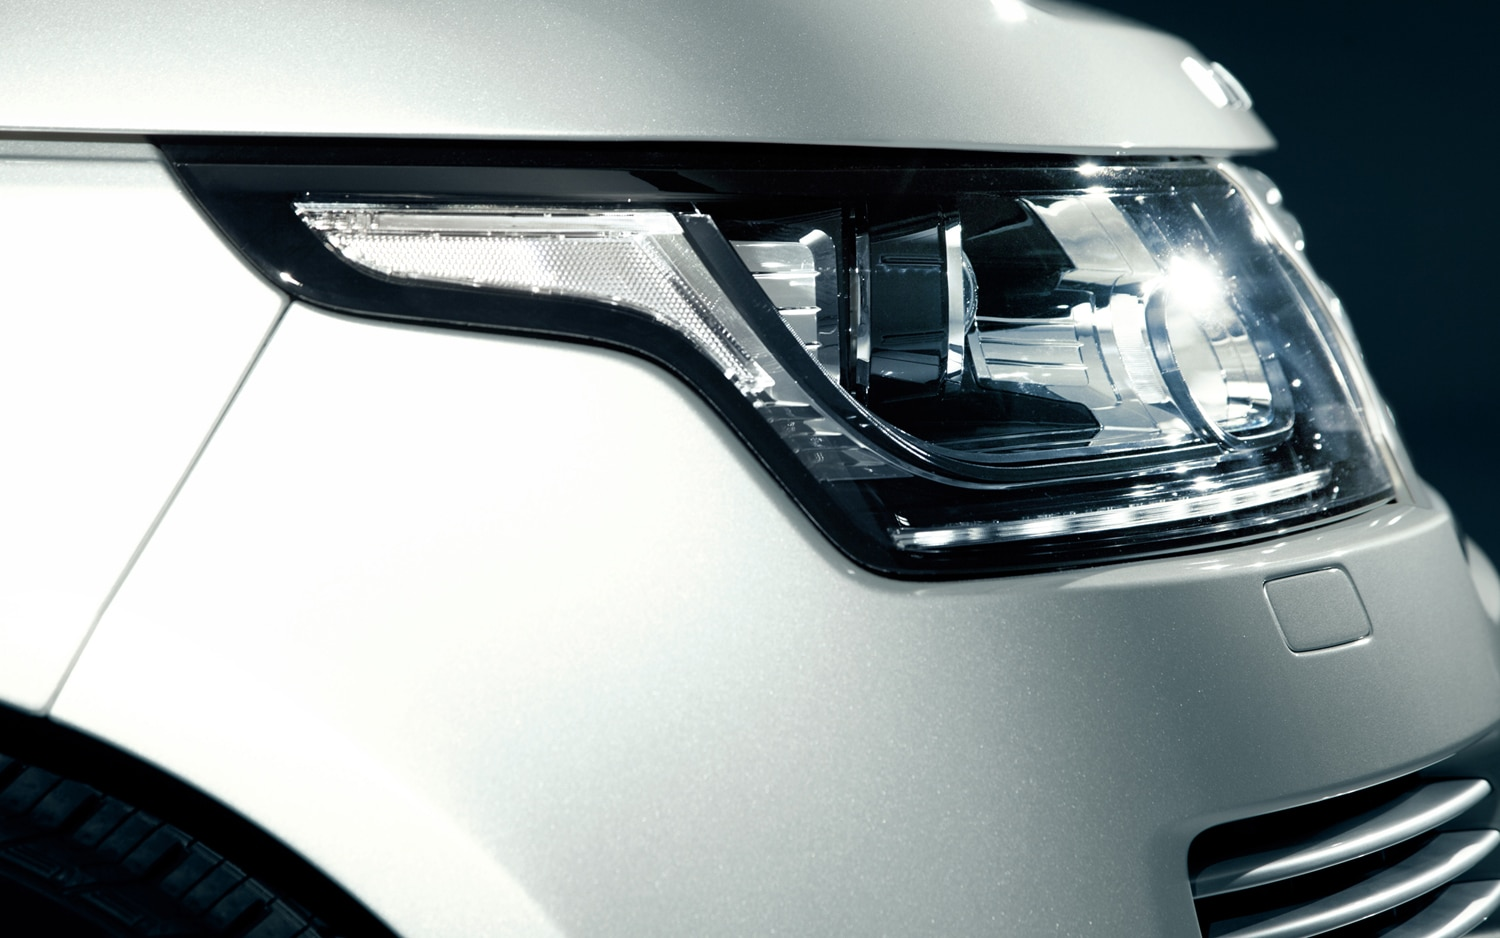 2013 Land Rover Range Rover Headlamp